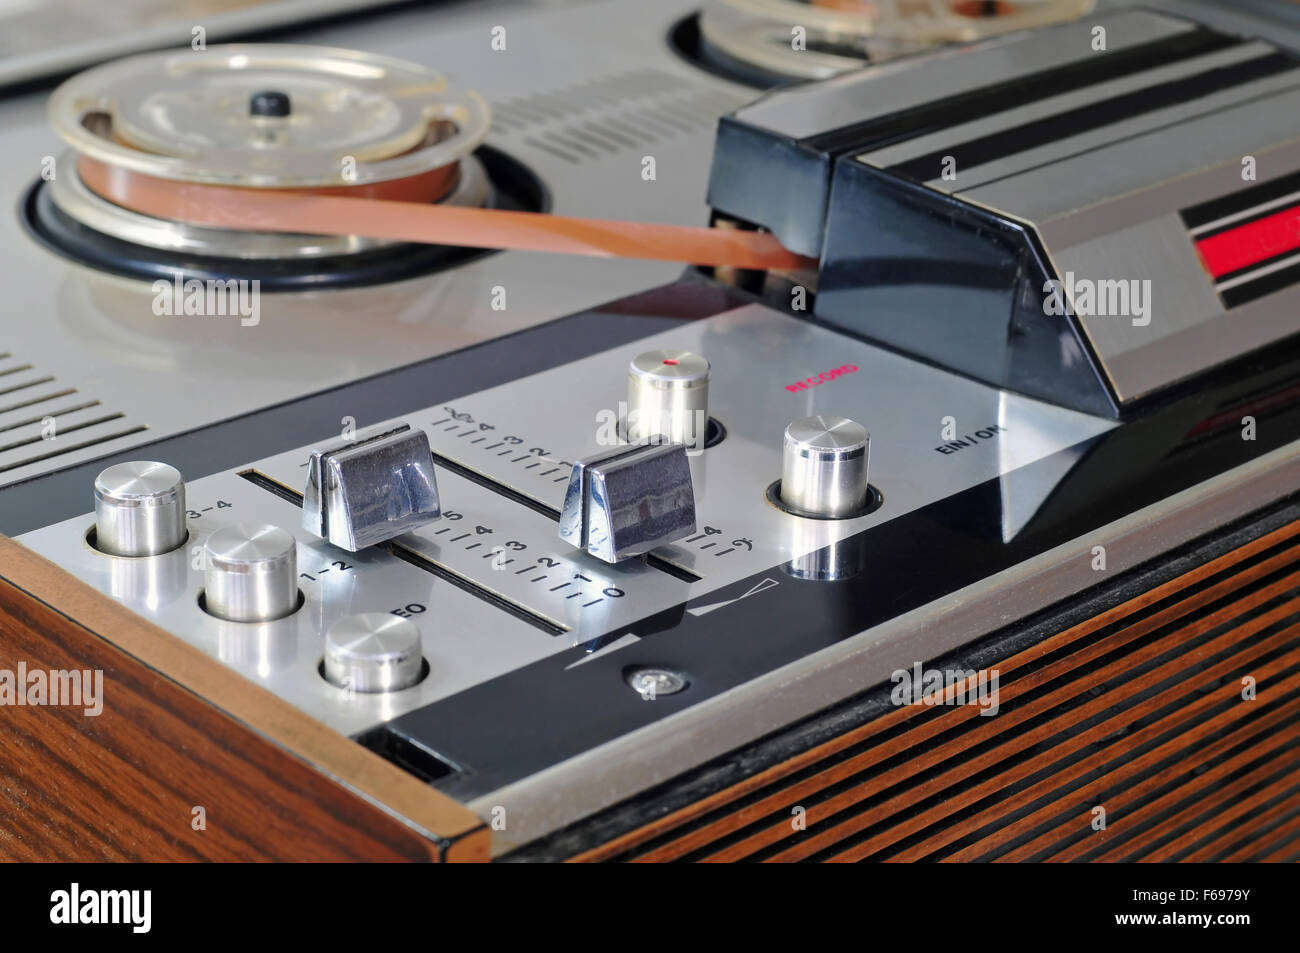 Close up photo of old reel to reel tape player - Stock Image